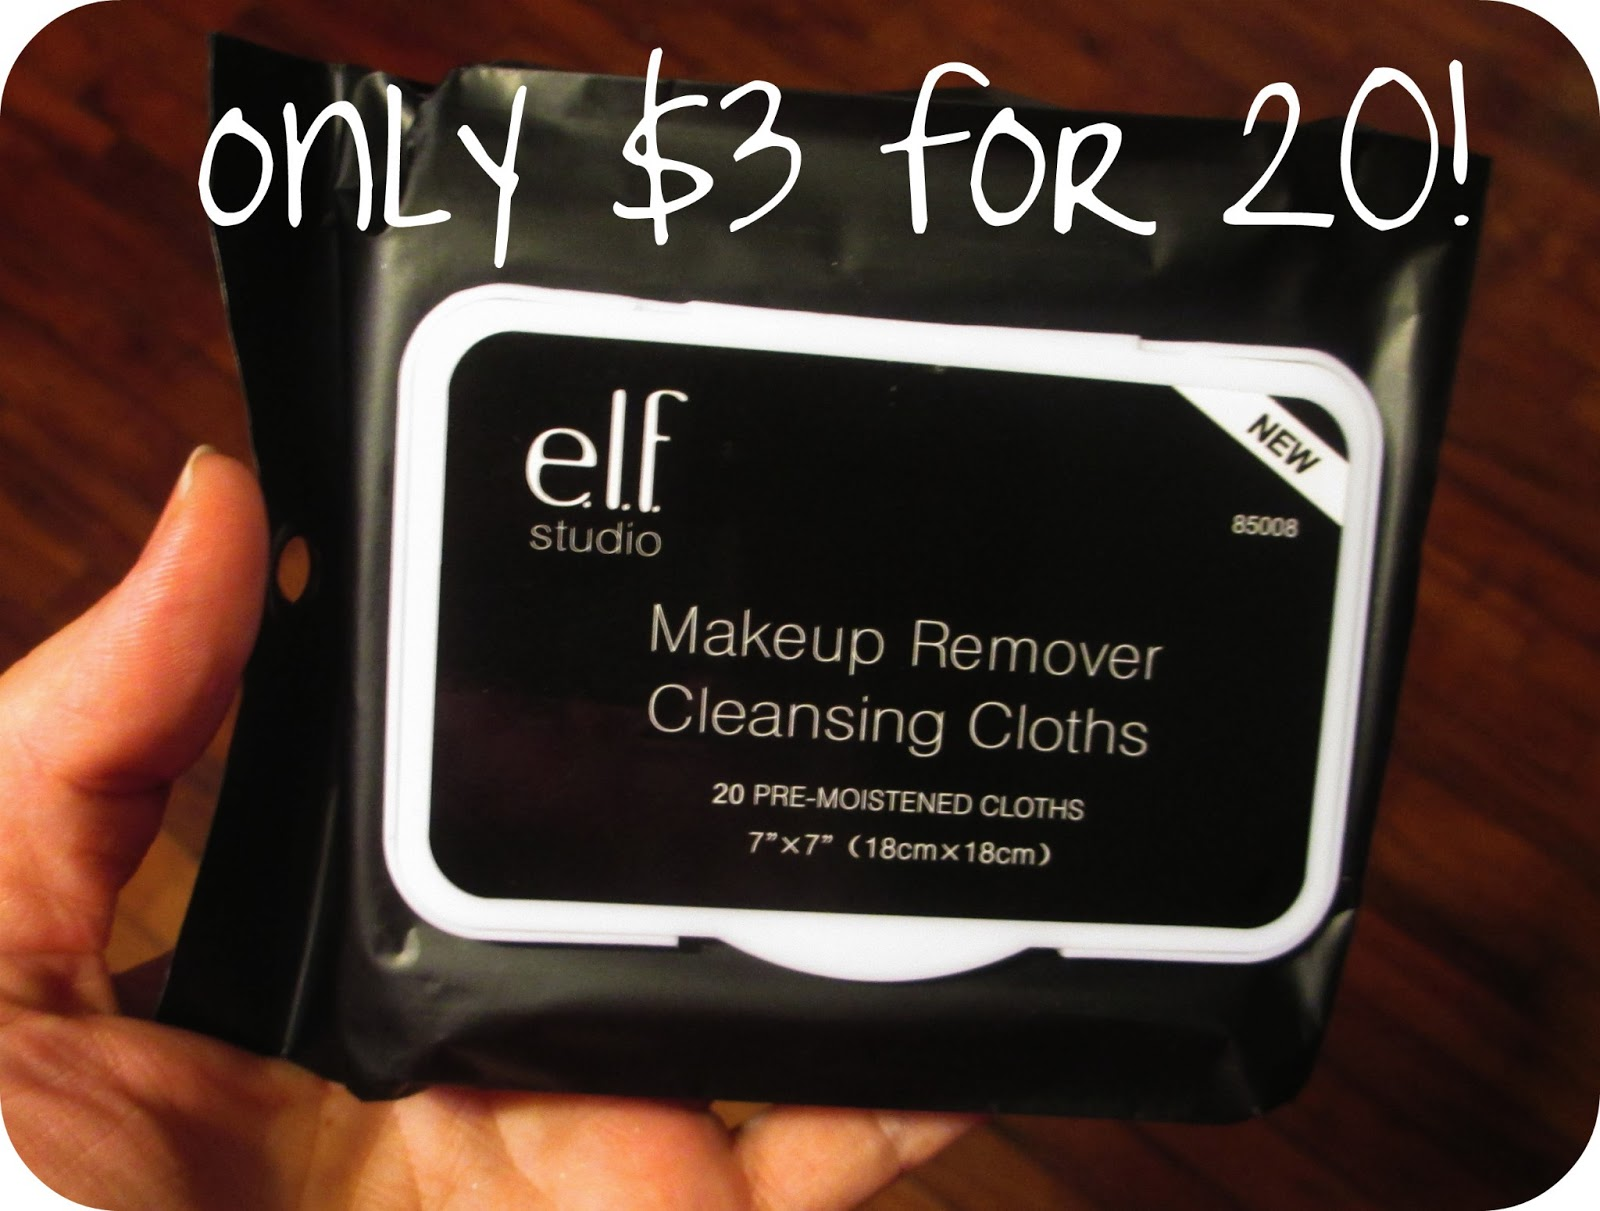 Gentle Skin Cleansers and Makeup Removers | e.l.f ...